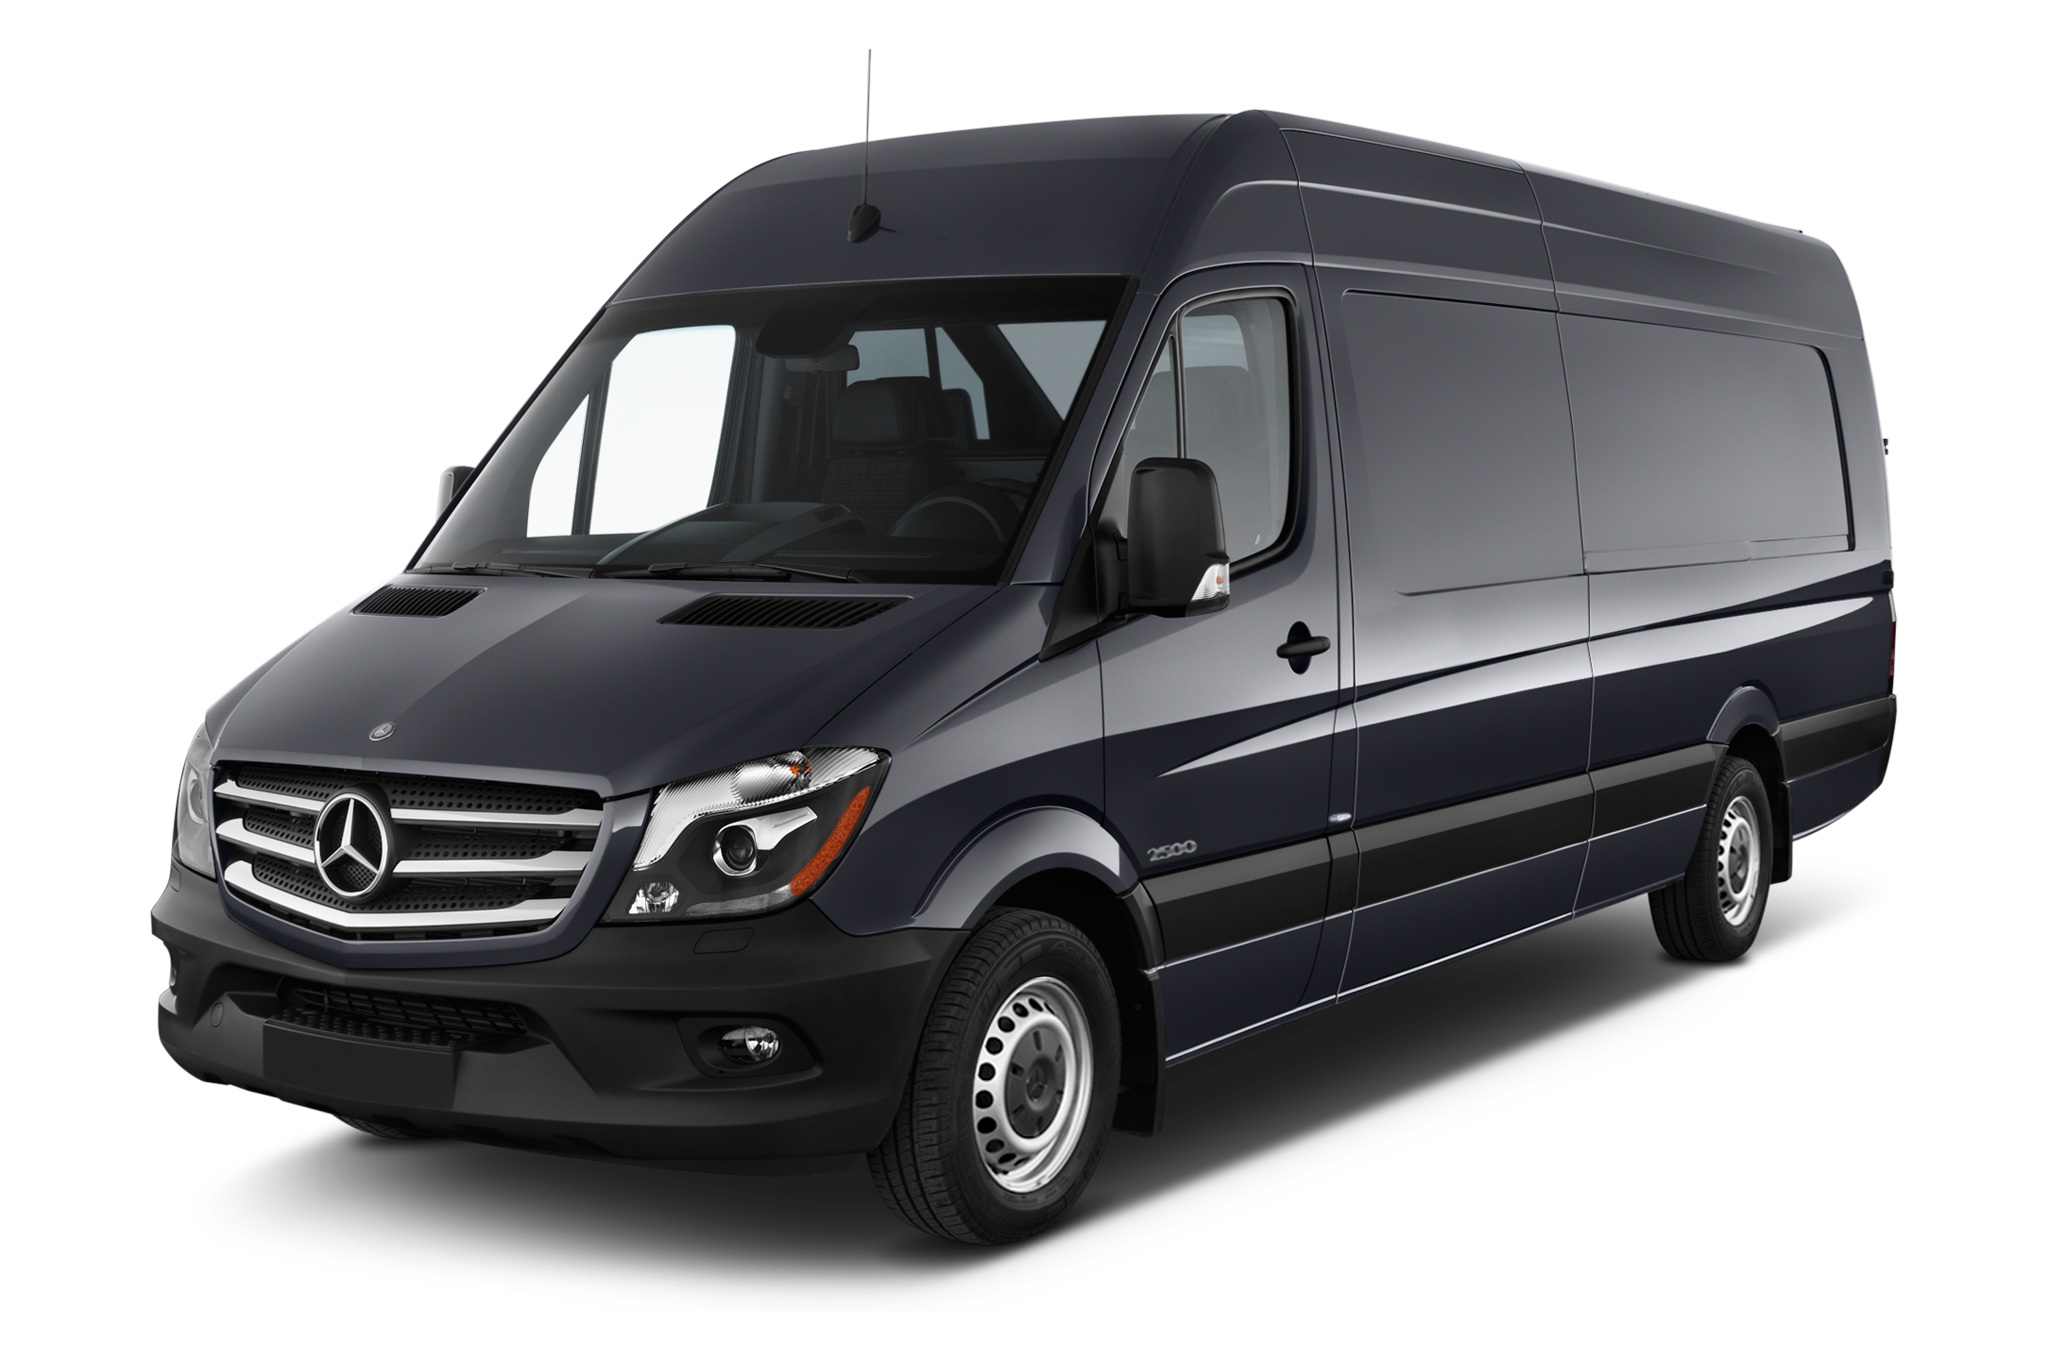 2015 mercedes benz sprinter cargo van 2500 170 wb high for 2015 mercedes benz 2500 high roof